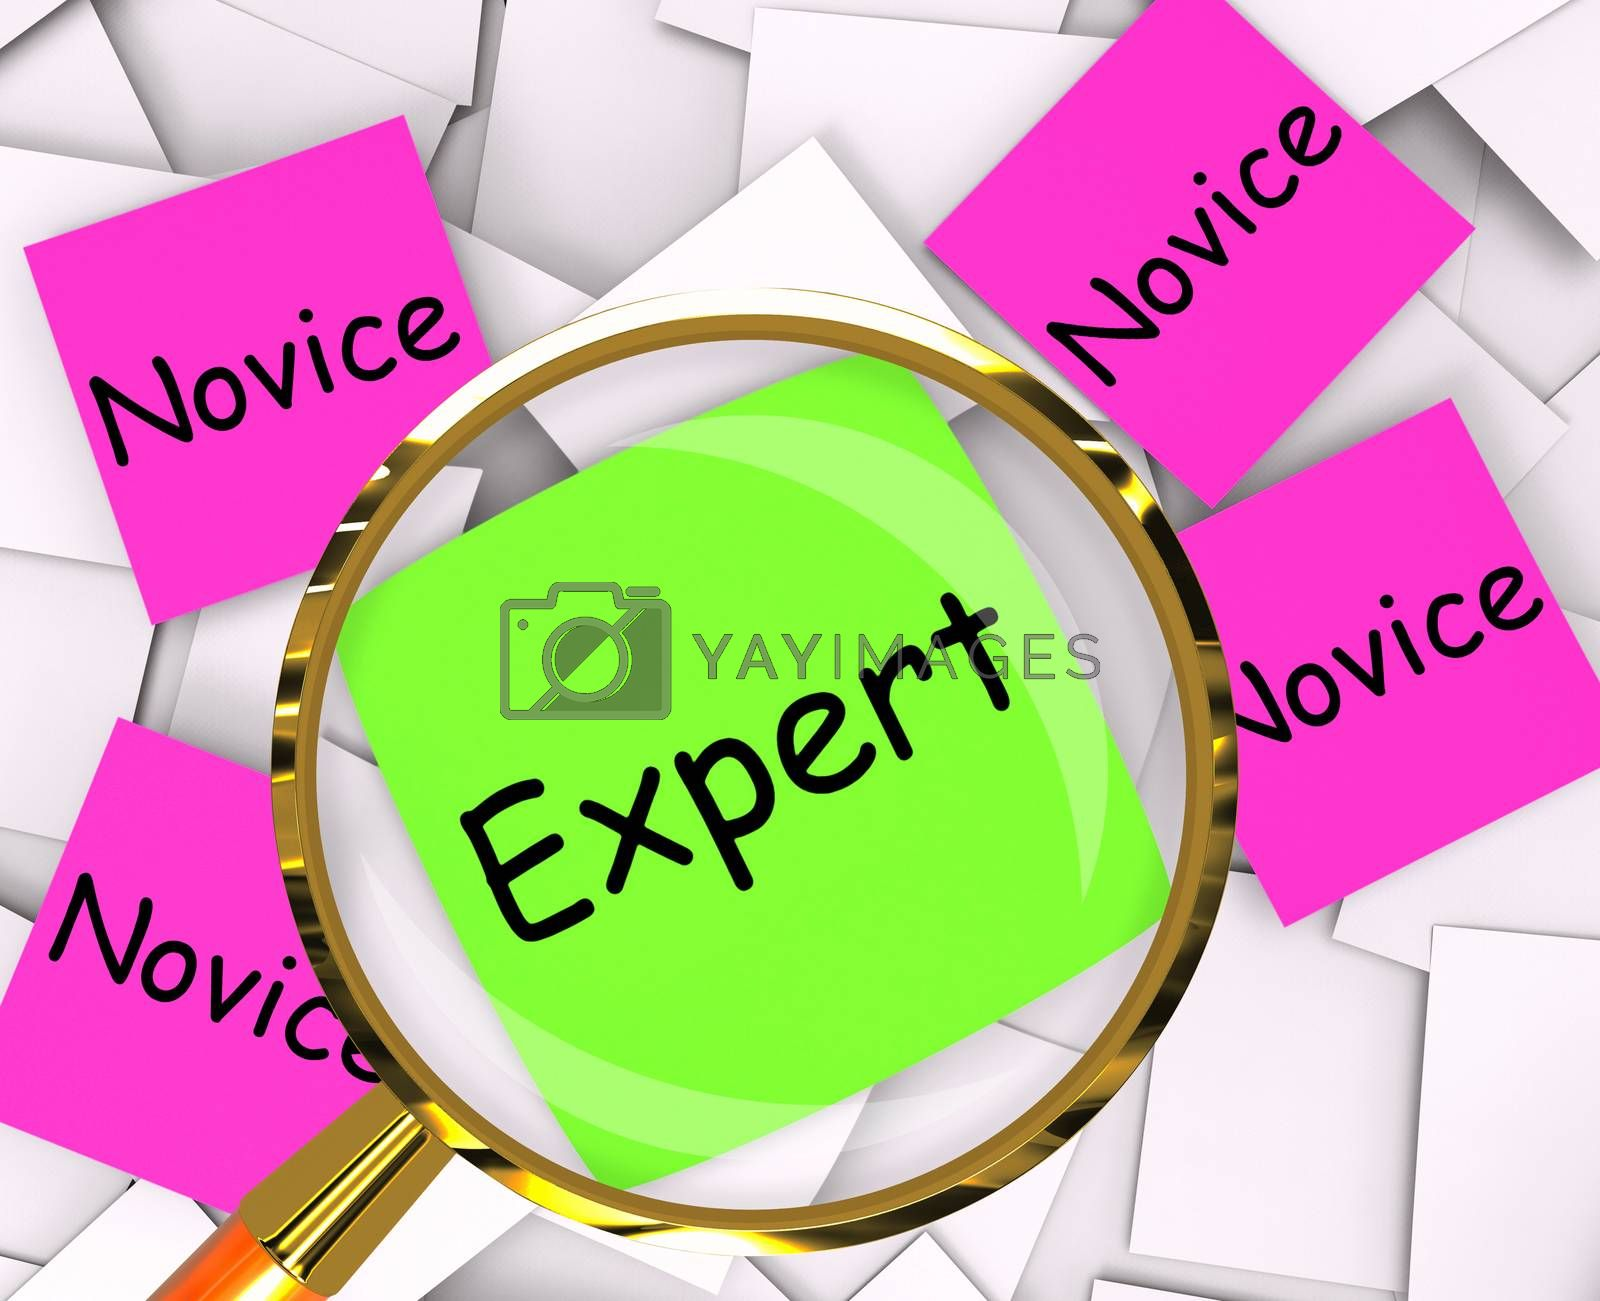 Expert Novice Post-It Papers Mean Experienced Or Inexperienced by stuartmiles